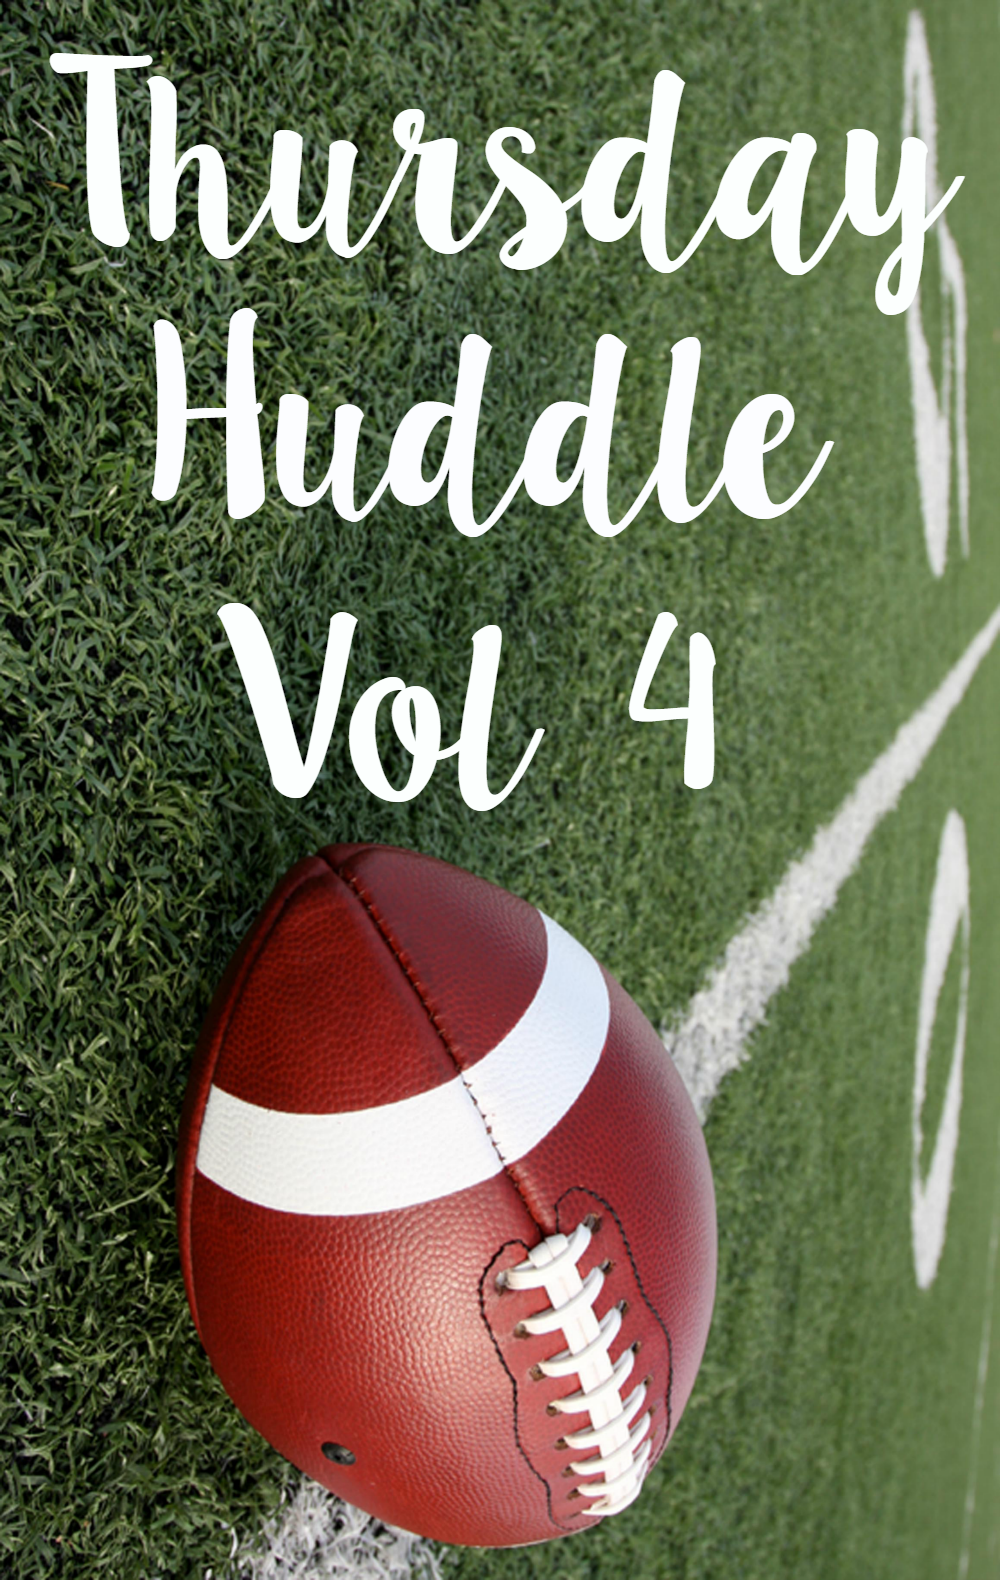 thursdayhuddlevol4